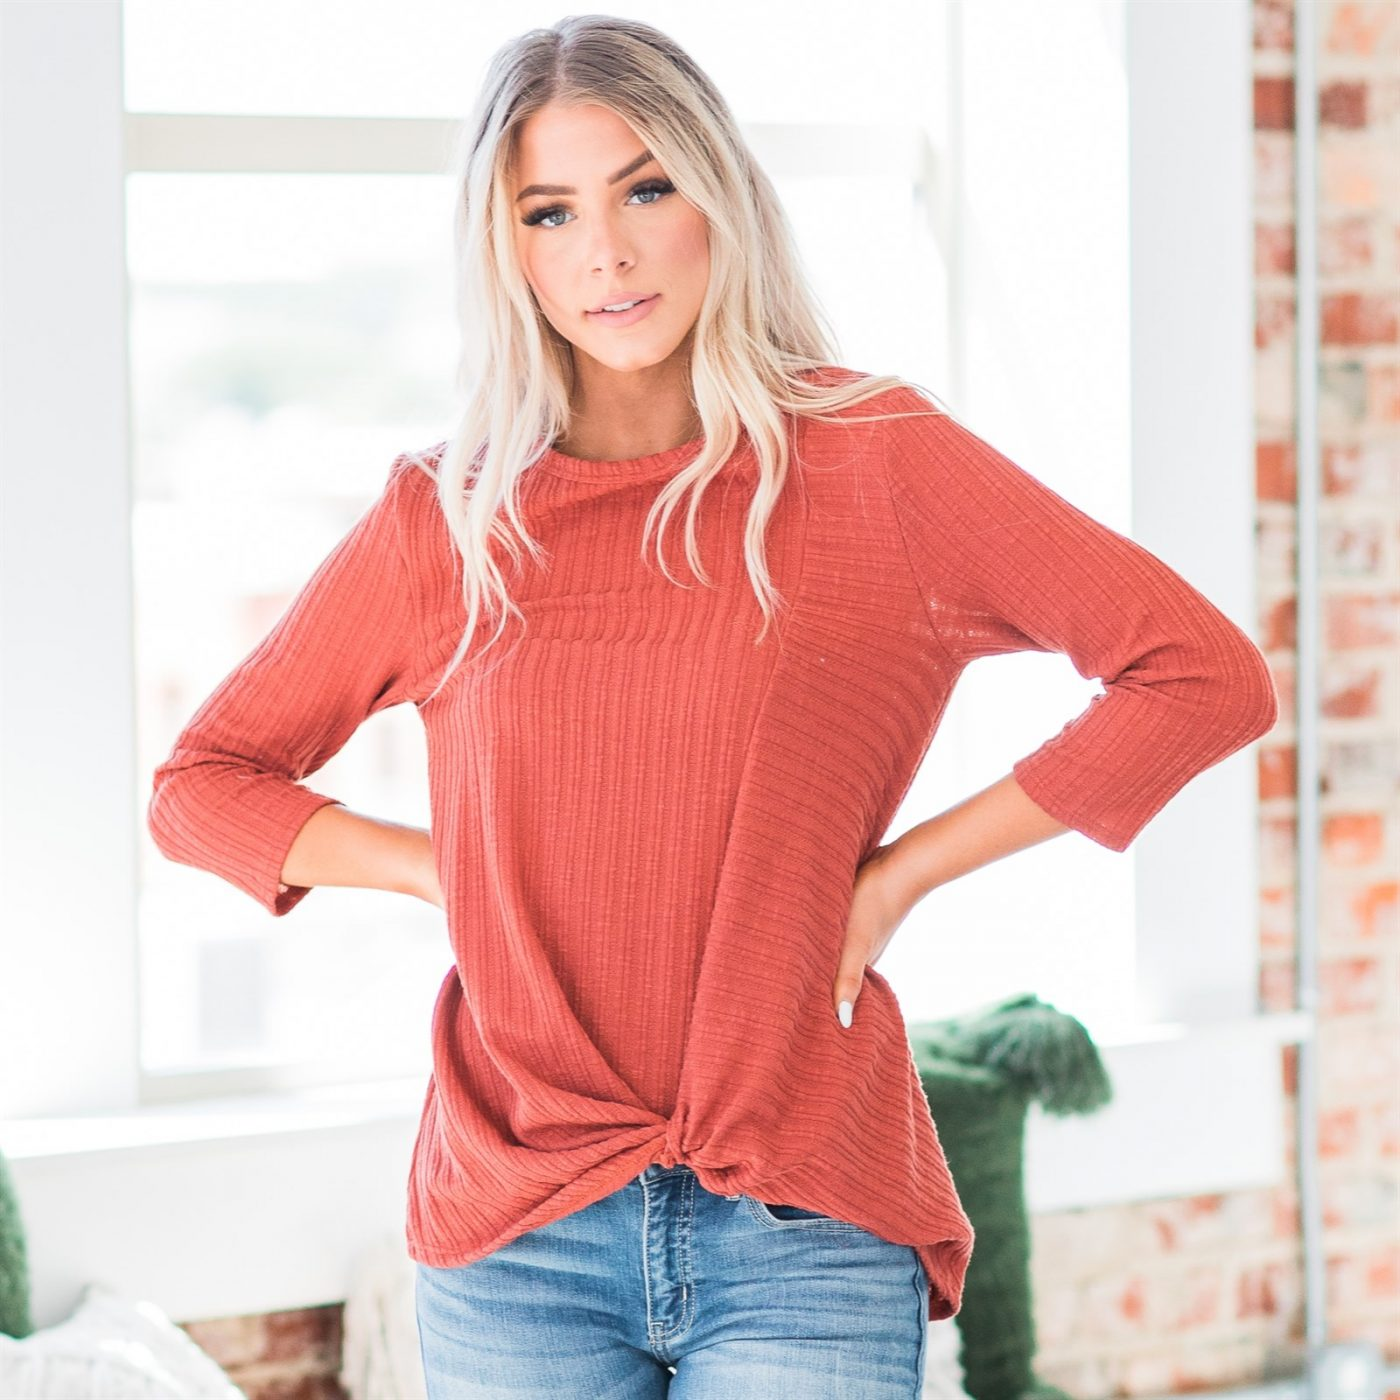 Was $44.99 - Now $23.99 - Jayleen Knot Top | Free Shipping (10/15 to 10/17)